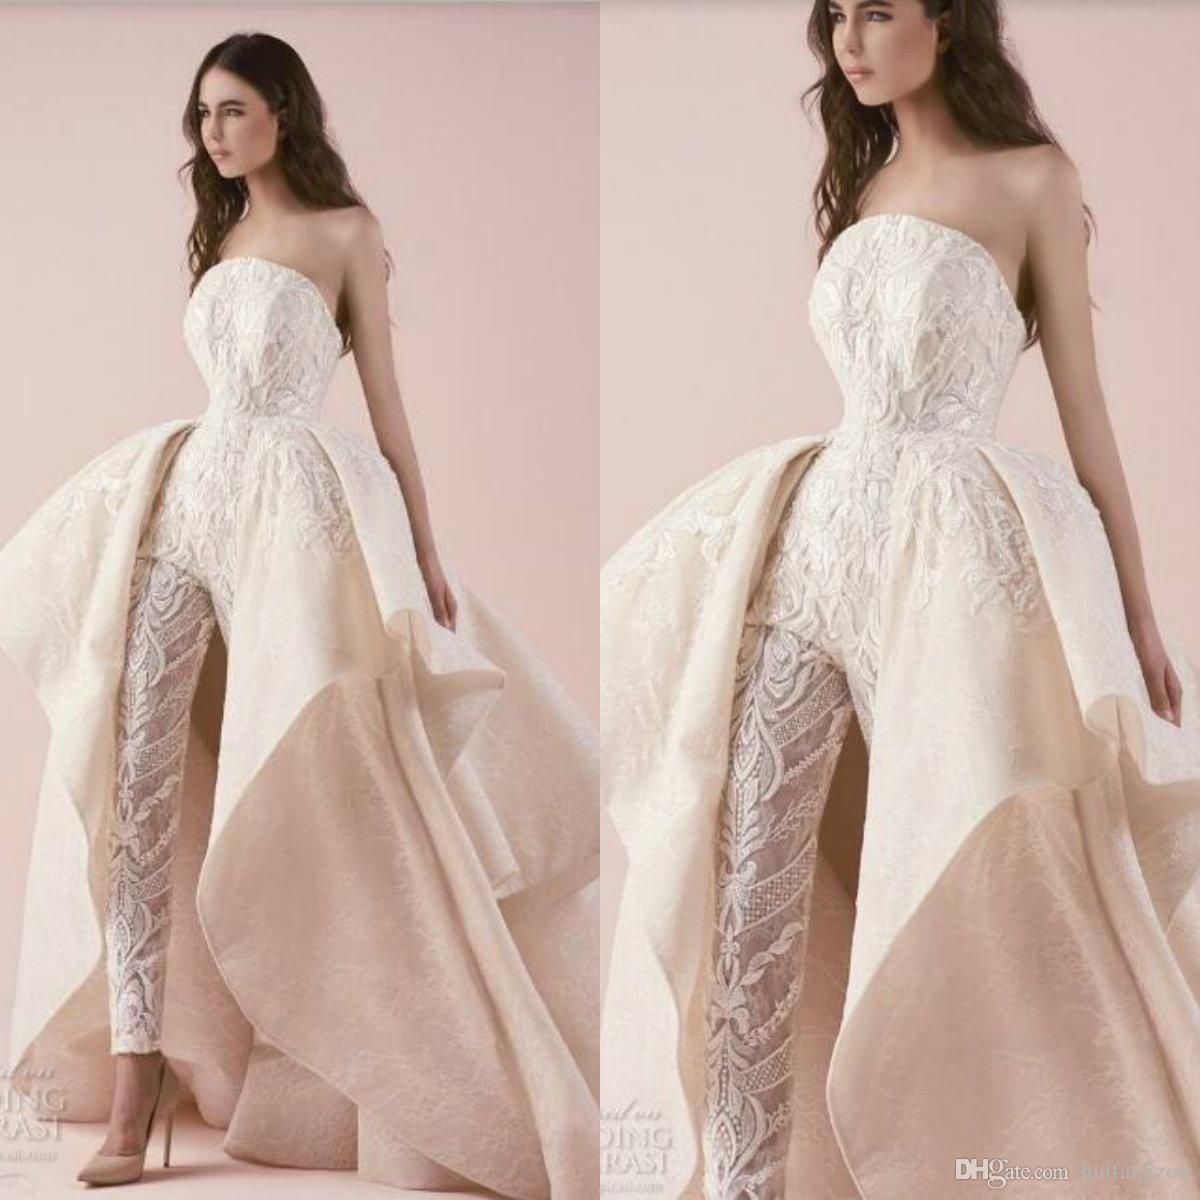 38+ Wedding jumpsuit with train plus size ideas in 2021